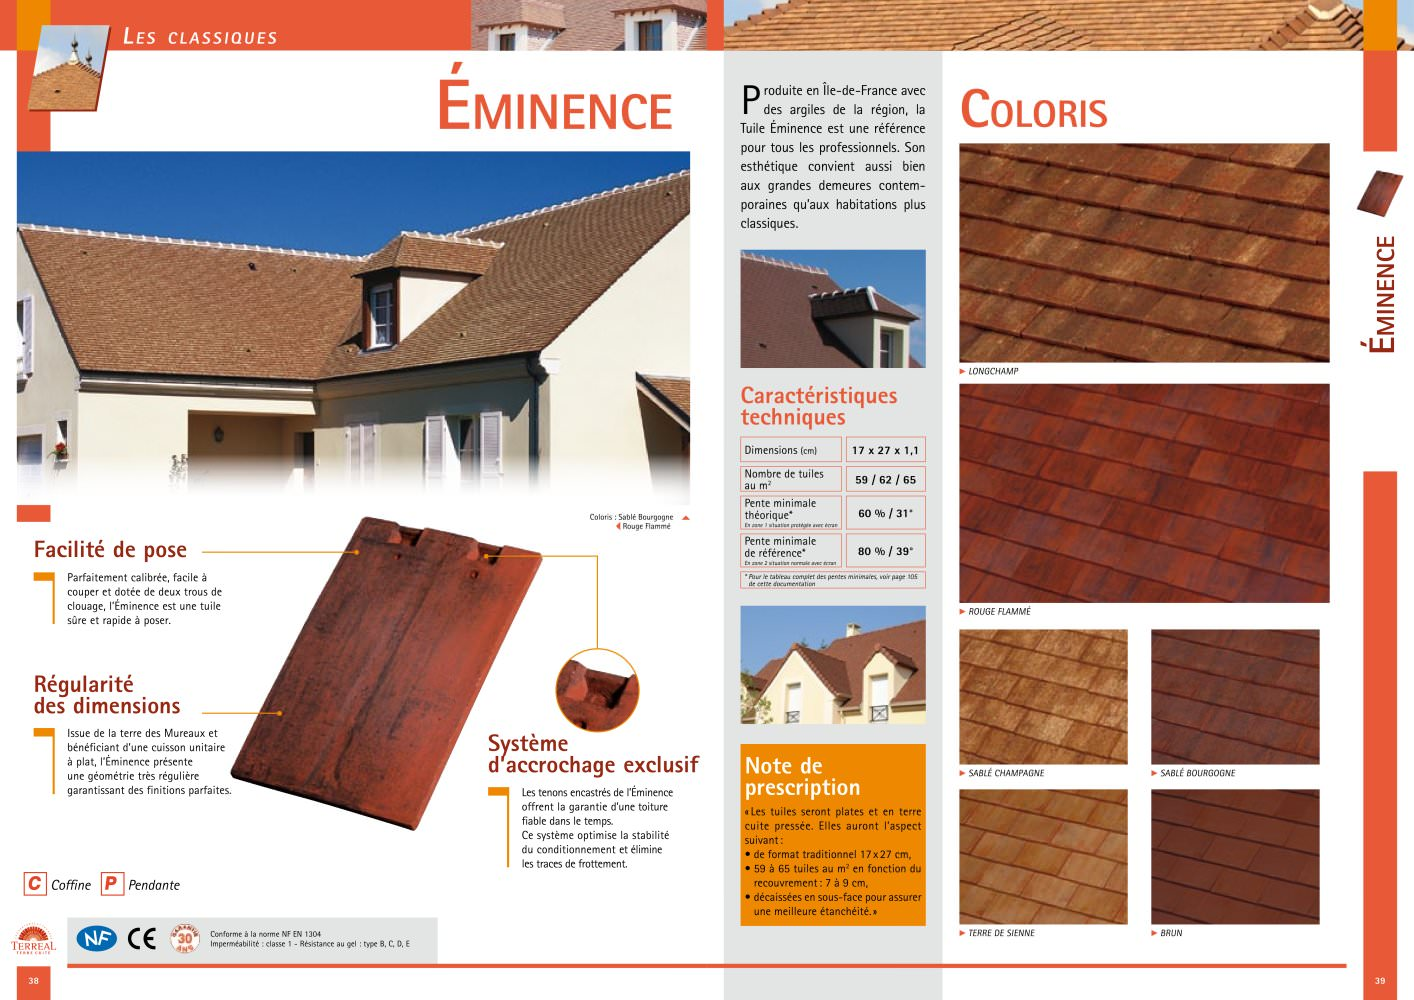 Tuile Des Mureaux Eminence Terreal Couverture Pdf Catalogs Documentation